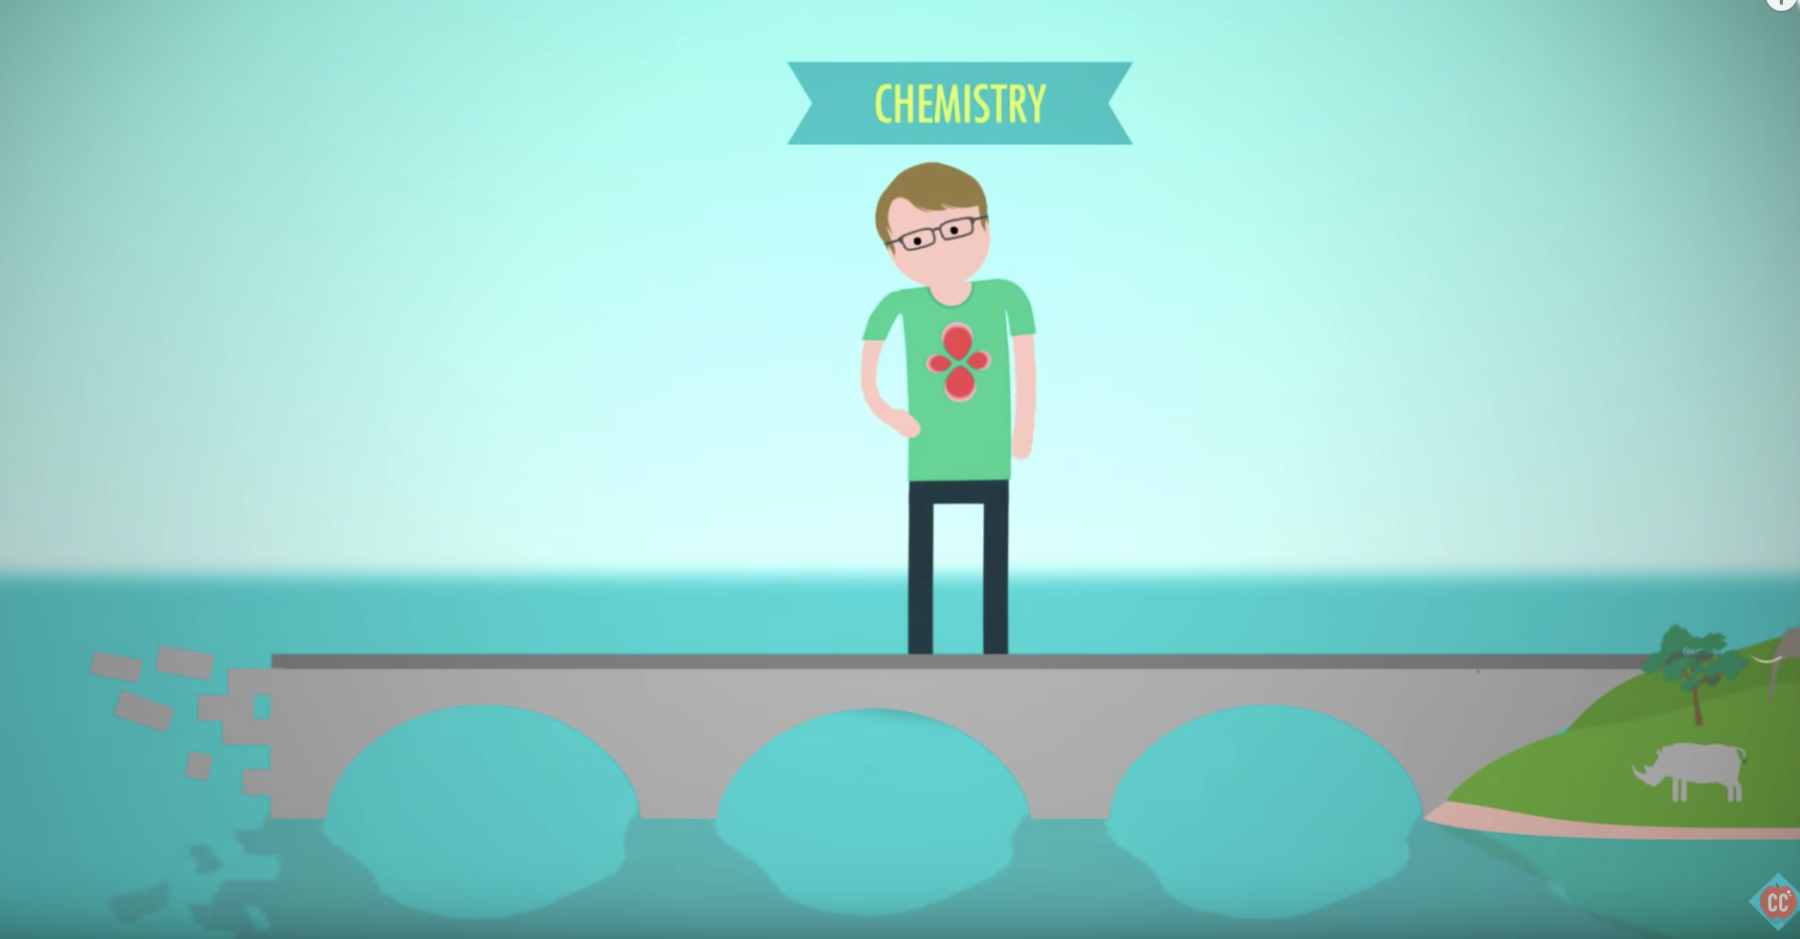 A crash course in chemistry